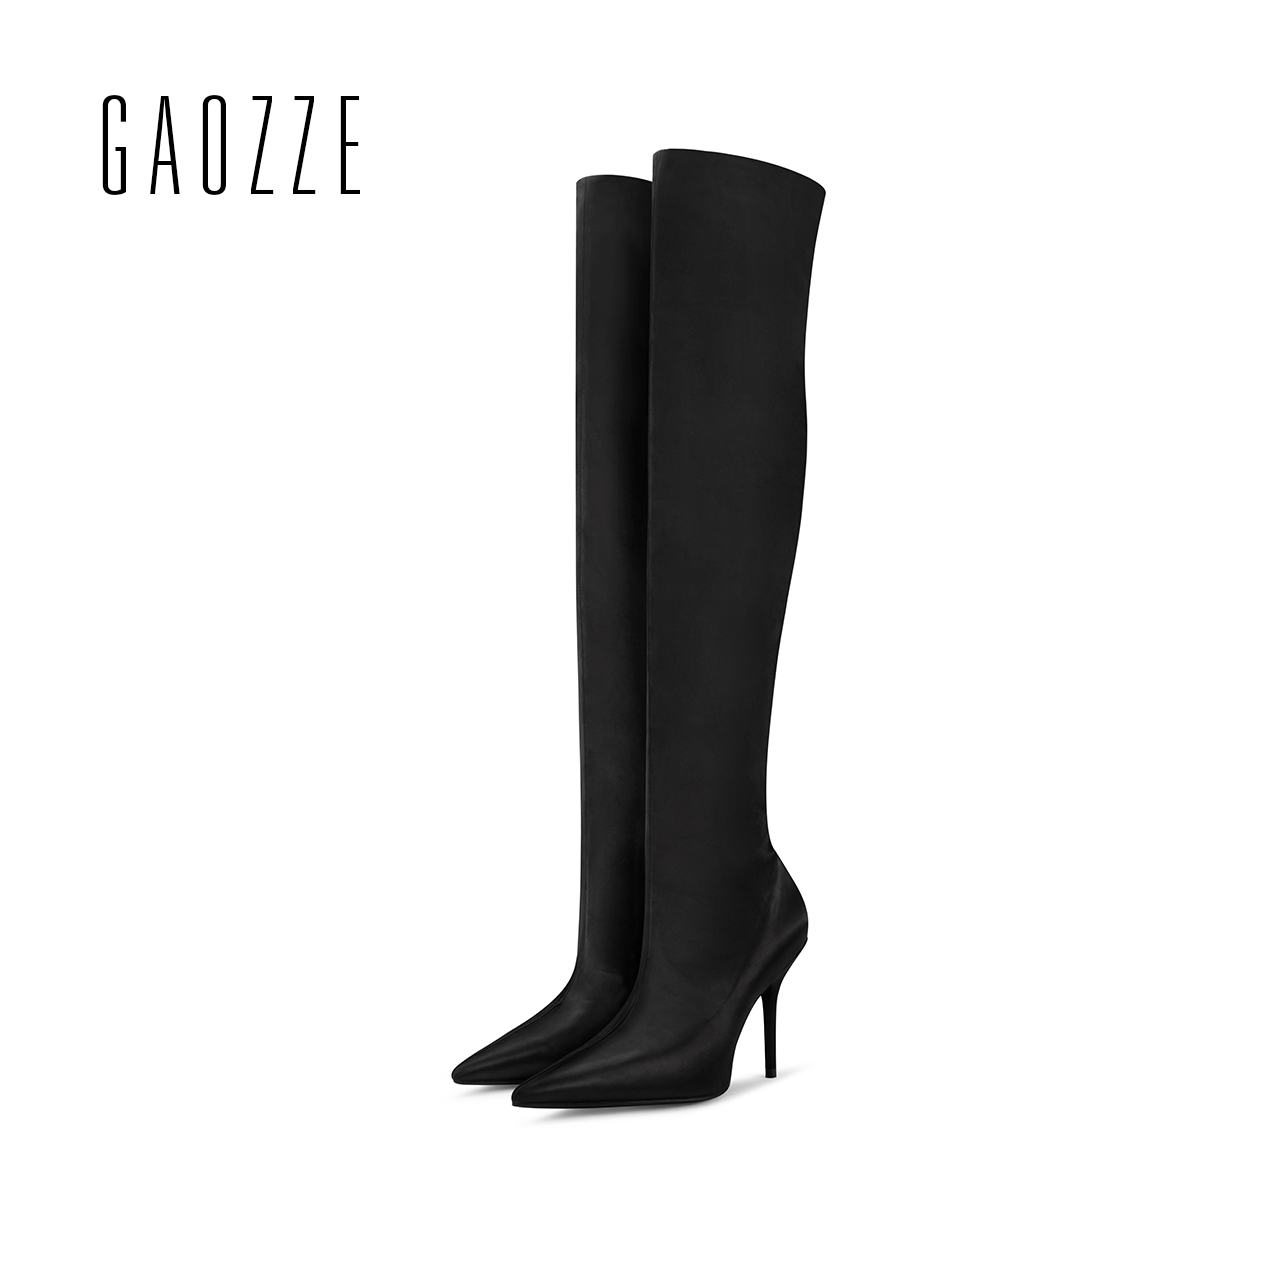 GAOZZE women over-the-knee boots sexy thin high heels boots pointed toe women shoes elastic Fashion Boots 2017 winter new nasipal 2017 new women pu sexy fashion over the knee boots sexy thin high heel boots platform woman shoes big size 34 43 g804